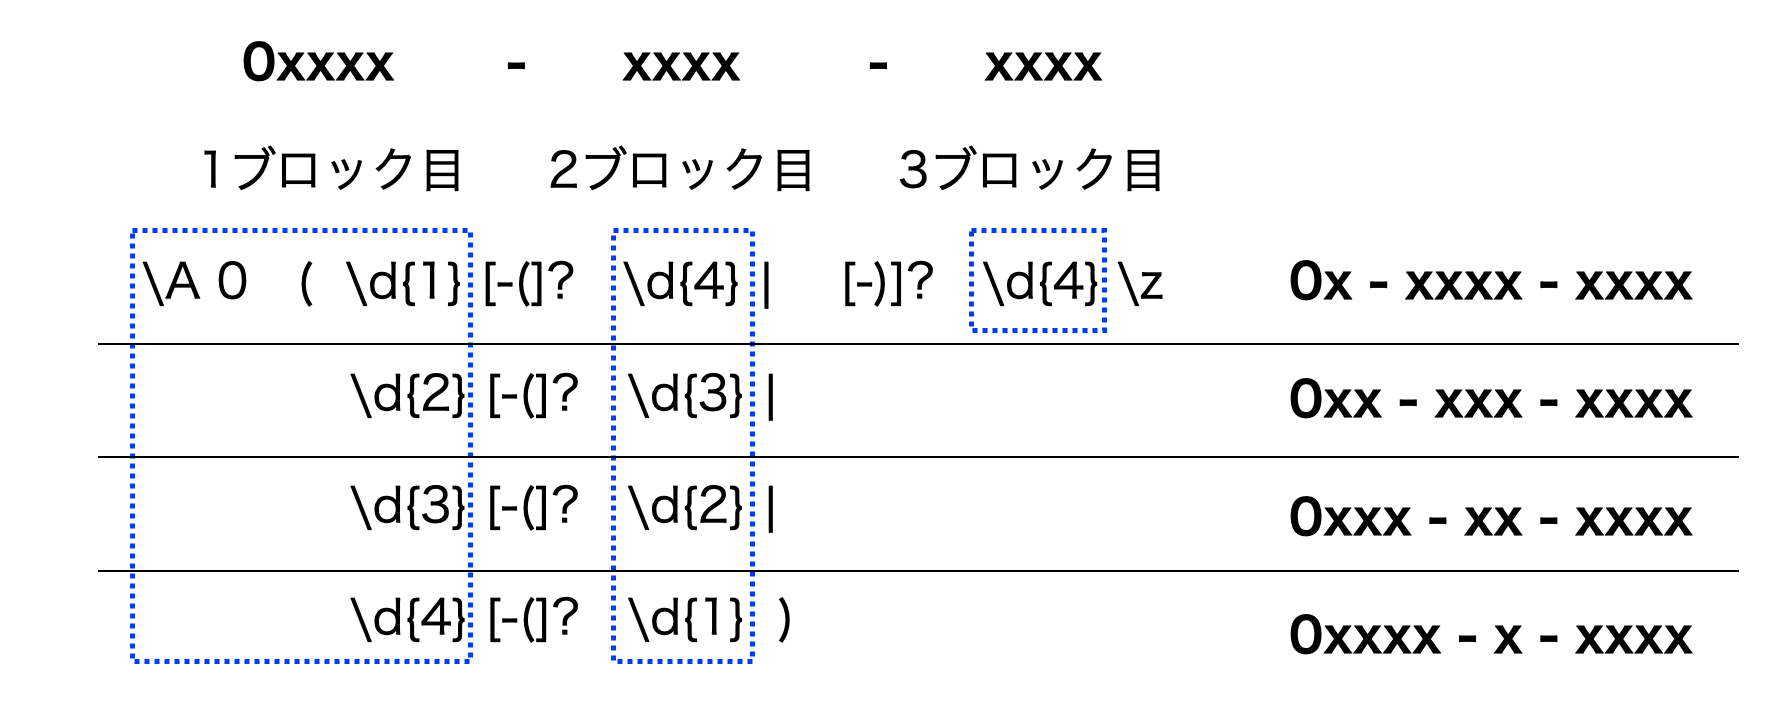 Regular expression_fixed.png